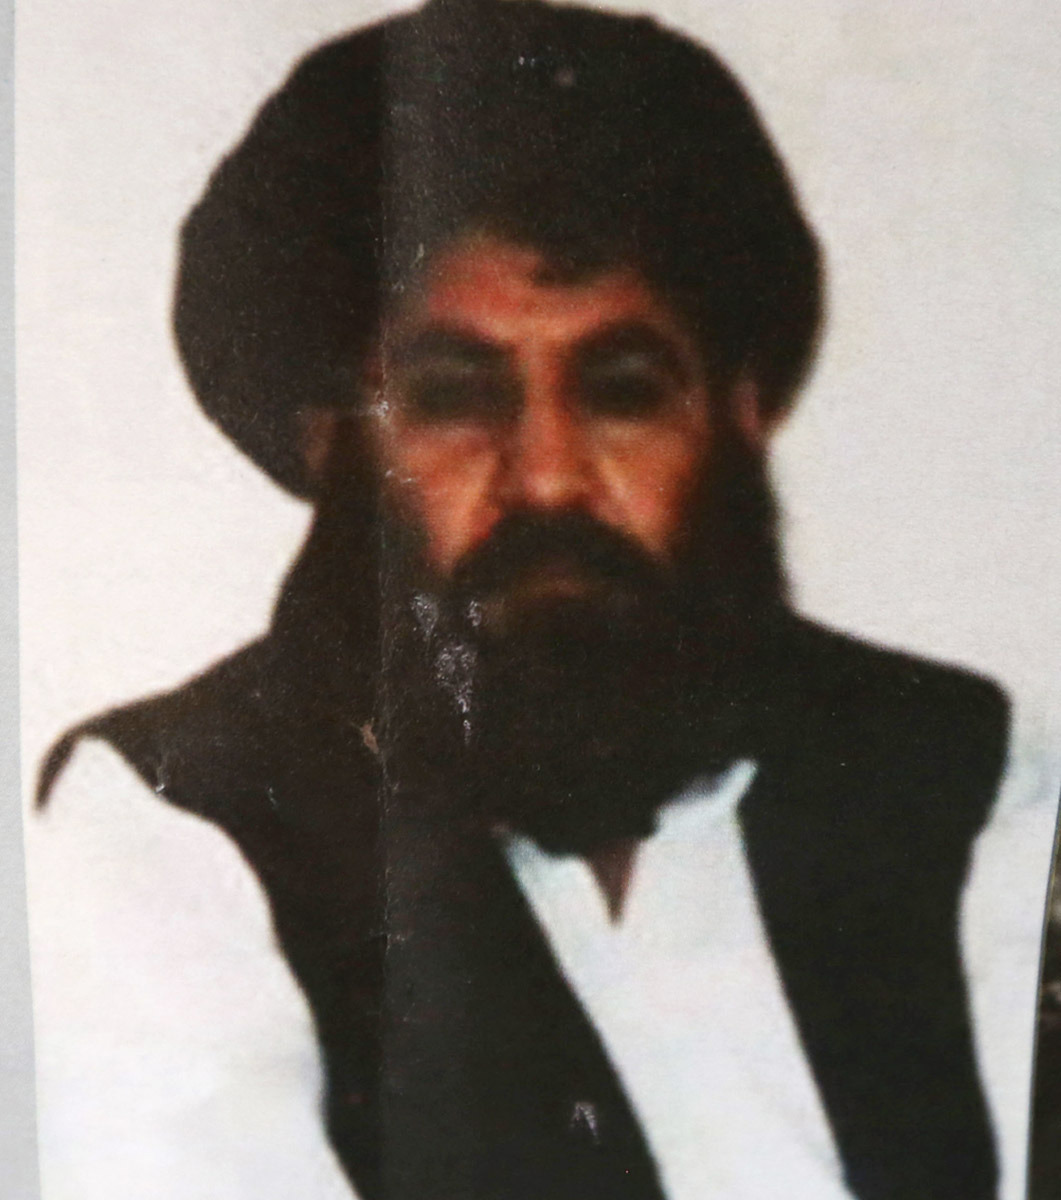 FILE - This Saturday, Aug. 1, 2015 file photo, shows Taliban leader Mullah Mansour. The Afghan Taliban has confirmed that its former leader Mullah Akhtar Mansour was killed in a U.S. drone strike last week and appointed a successor. In a statement sent to media Wednesday, May 25, 2016, the insurgent group said its new leader is Mullah Haibatullah Akhundzada, one of two Mansour's deputies. (AP Photo/Rahmat Gul, File)